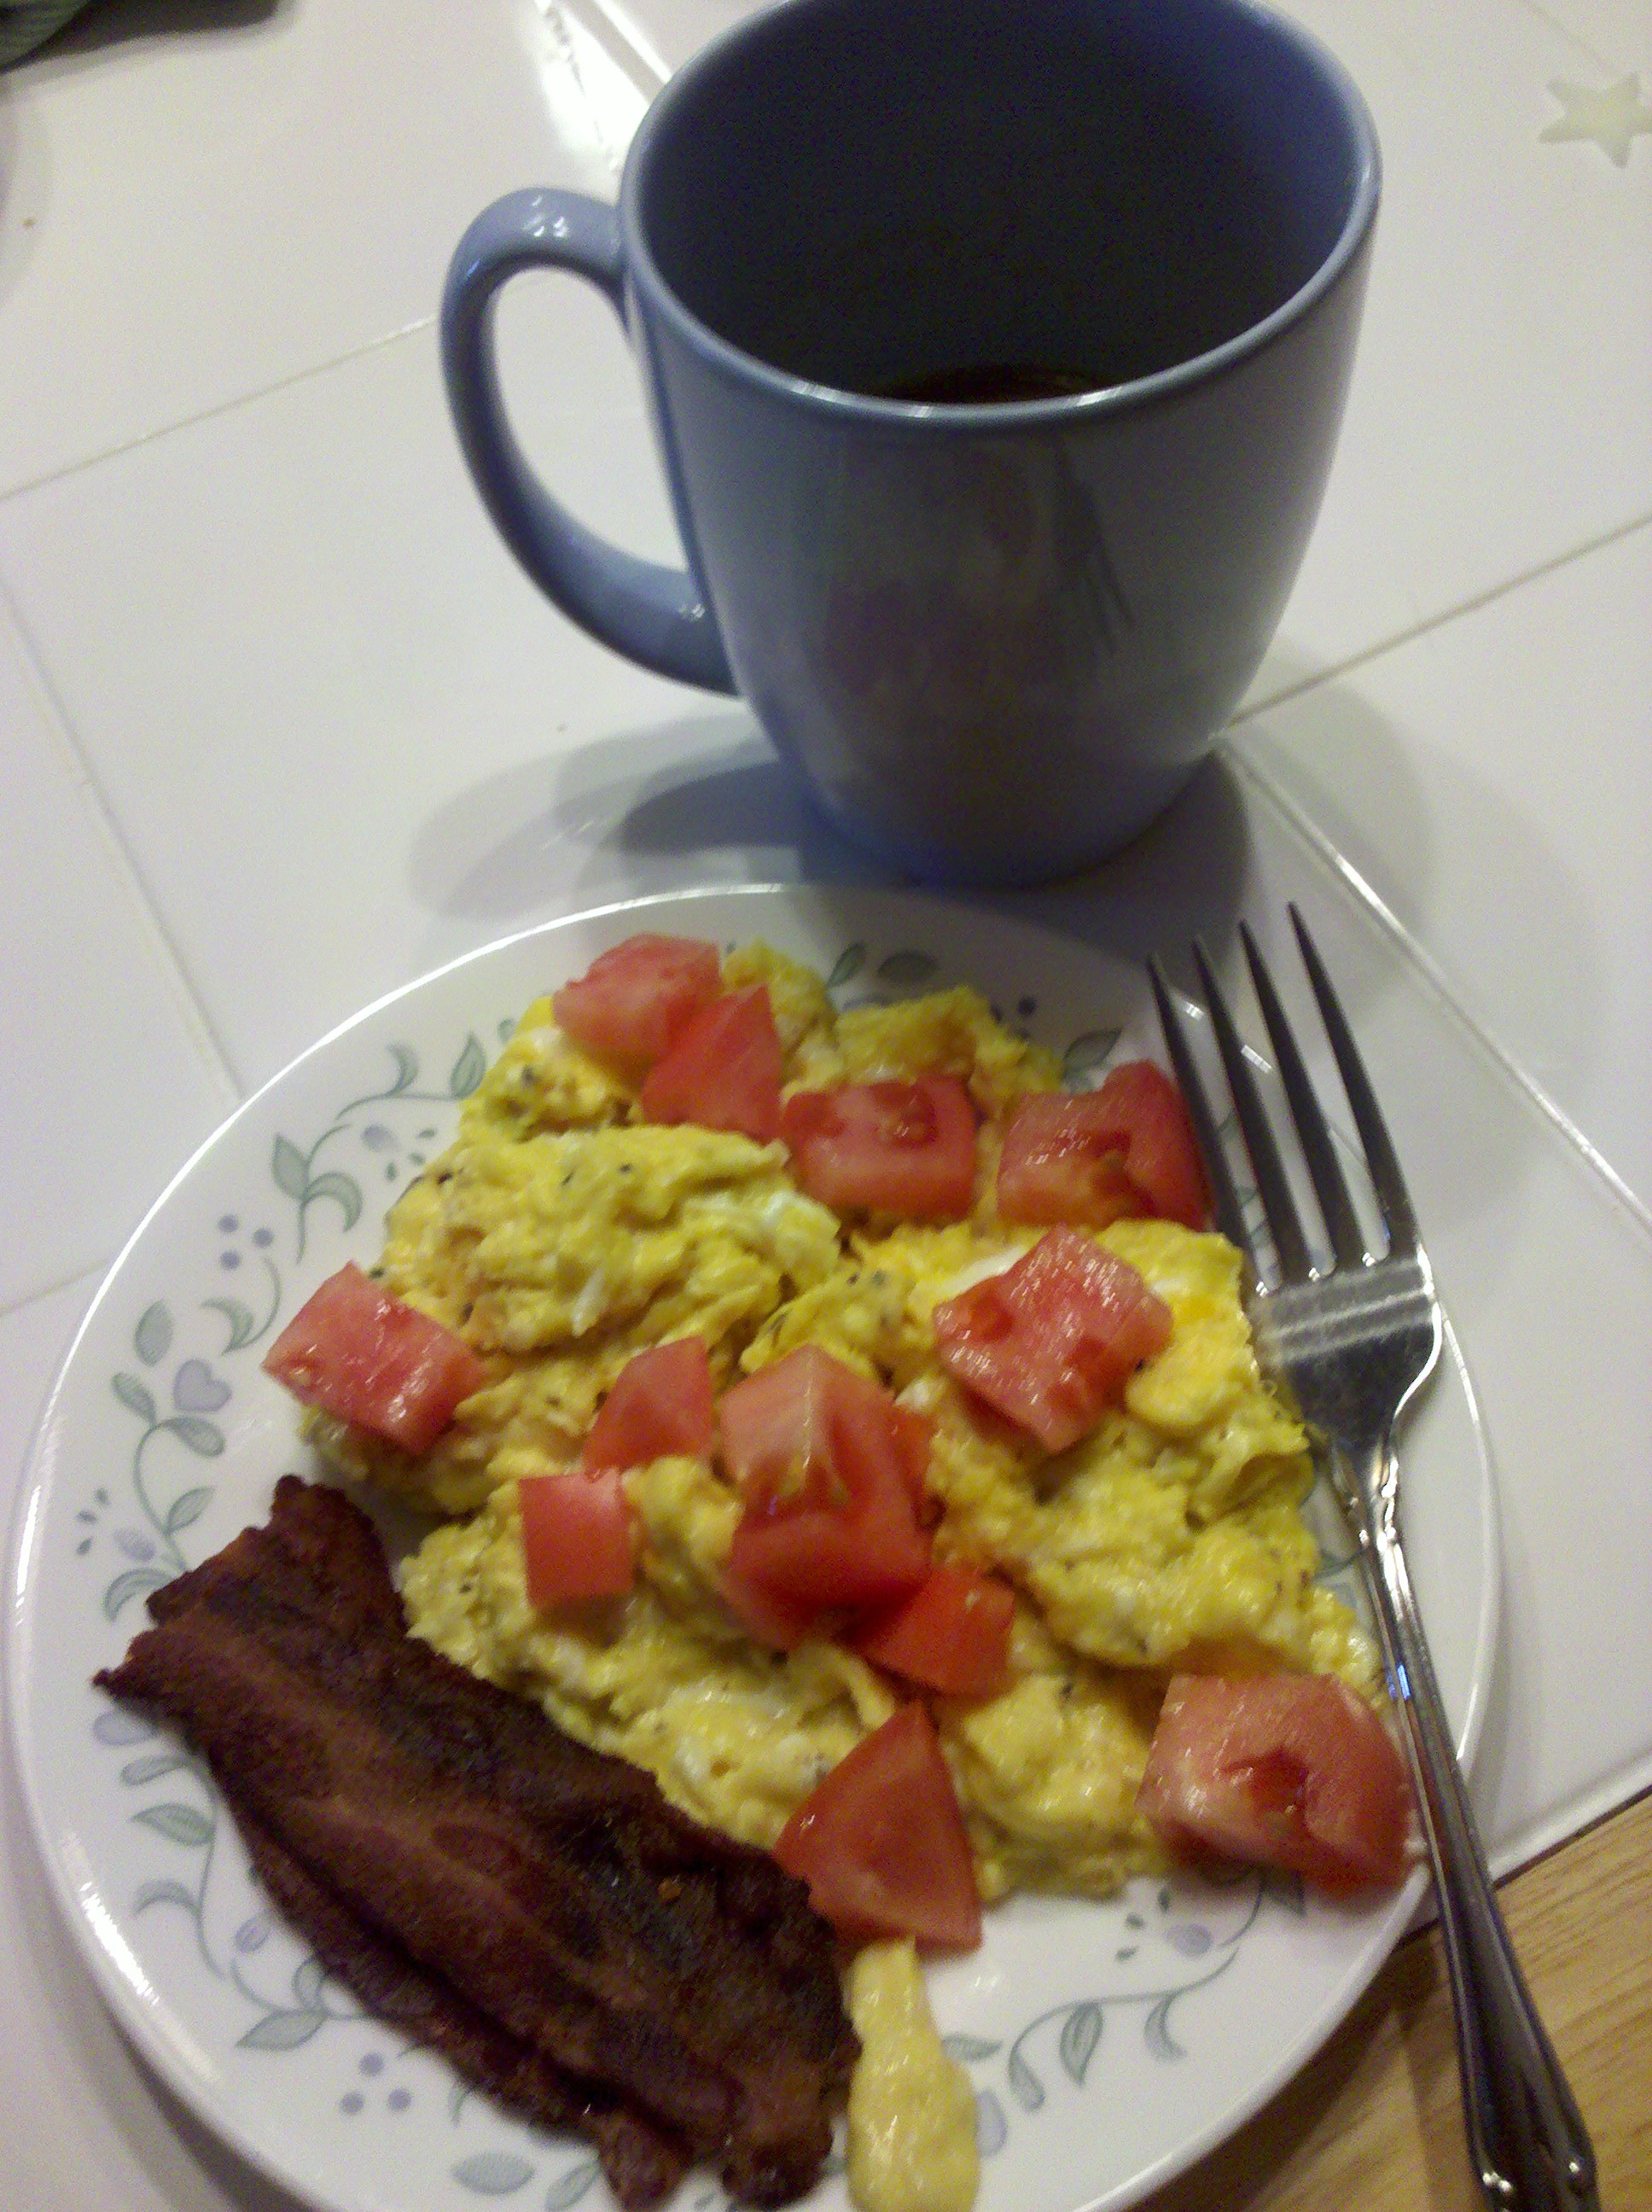 First Breakfast: Bacon and Eggs